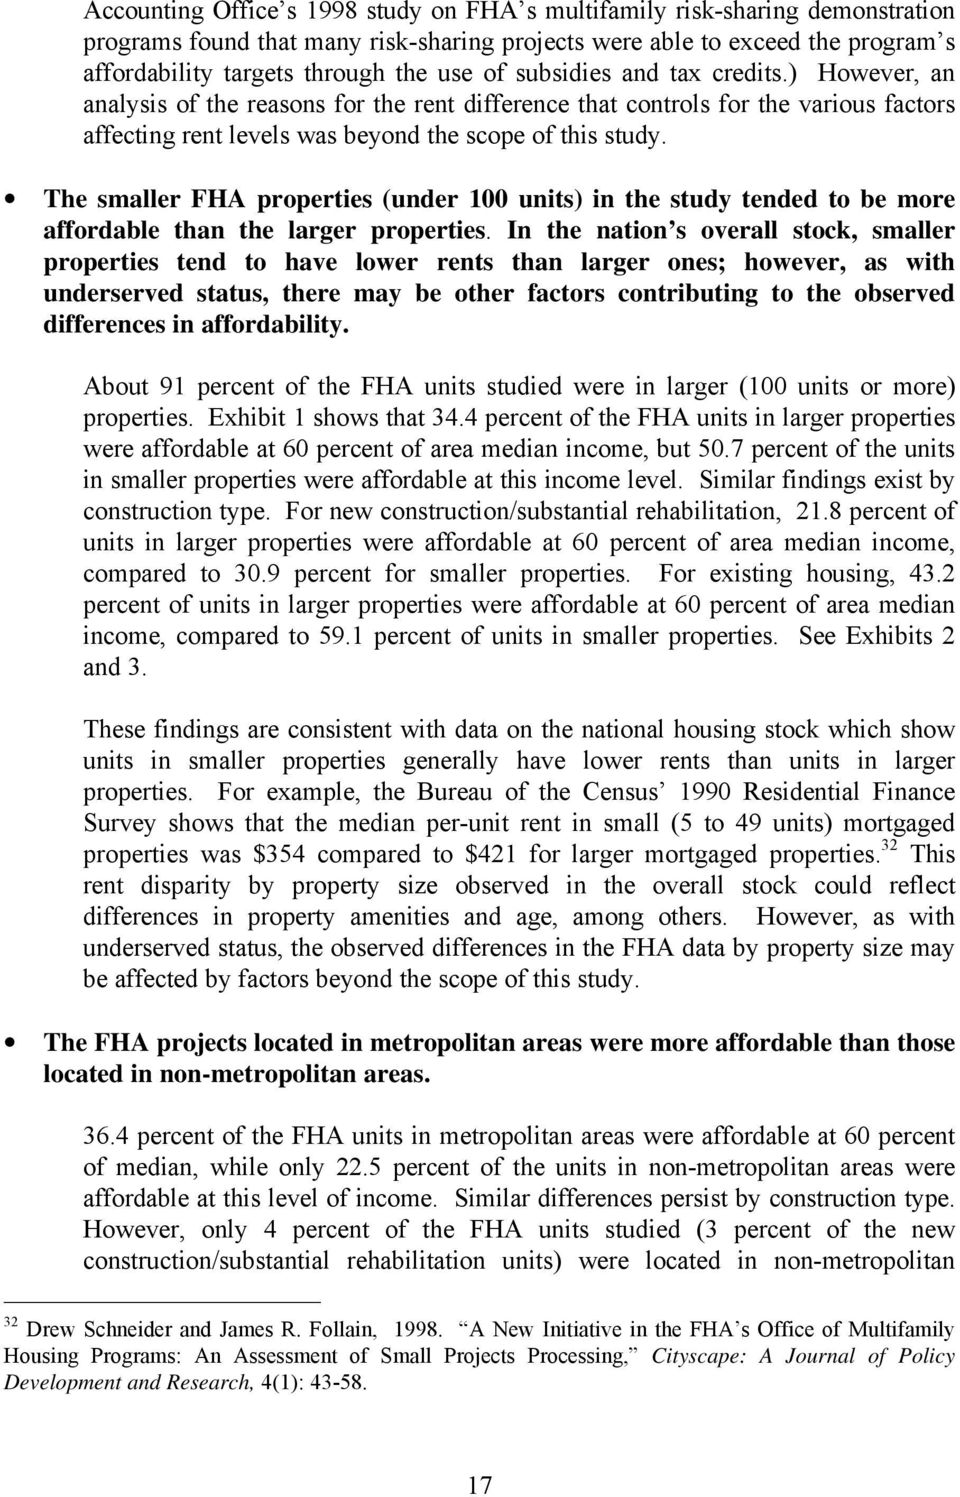 The smaller FHA properties (under 100 units) in the study tended to be more affordable than the larger properties.